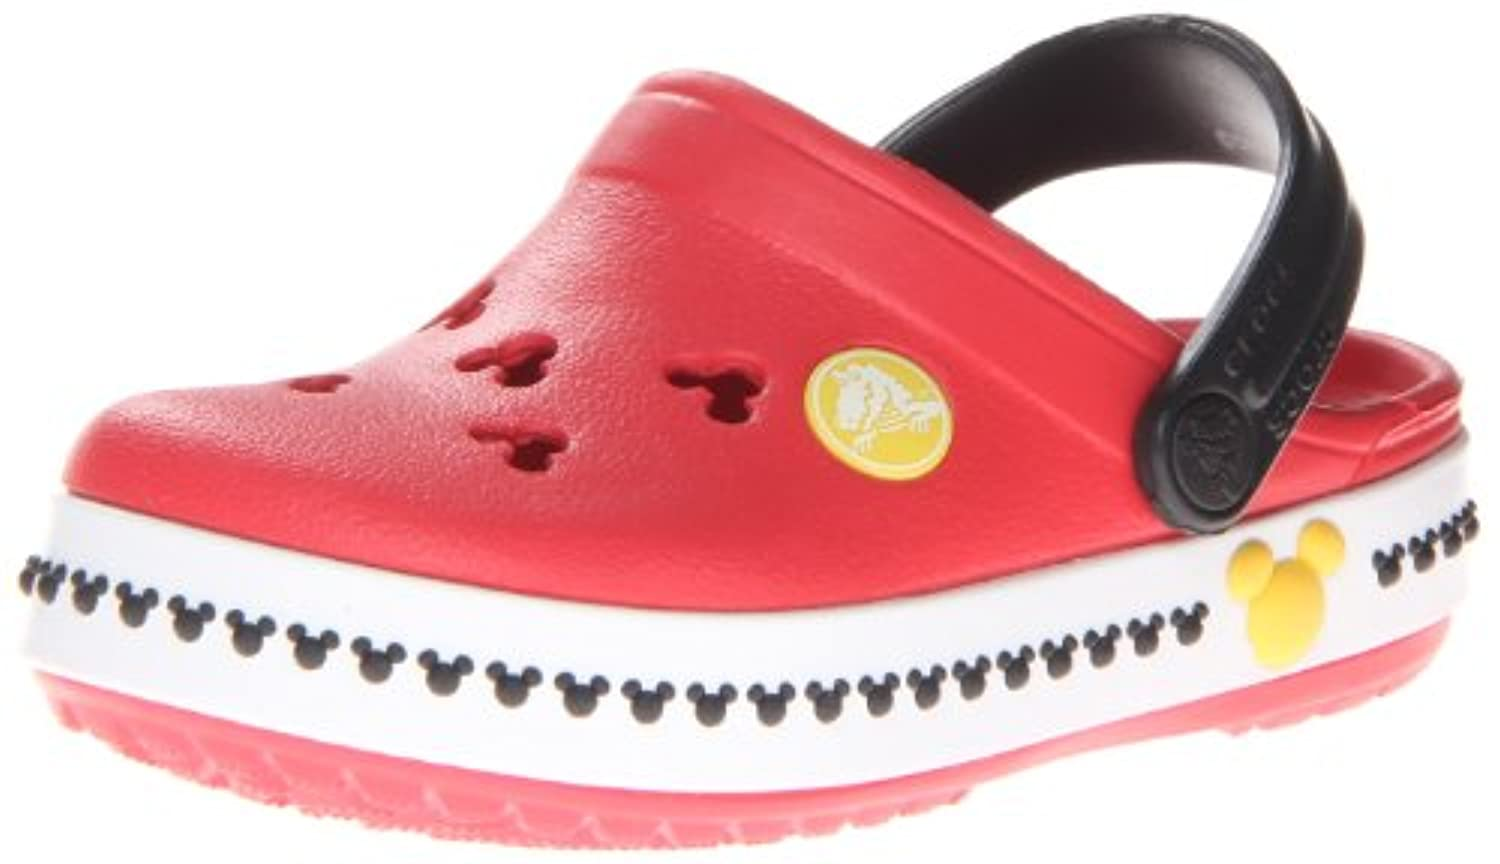 [クロックス] crocs サンダル Crocband Mickey Clog 3.0 Kids